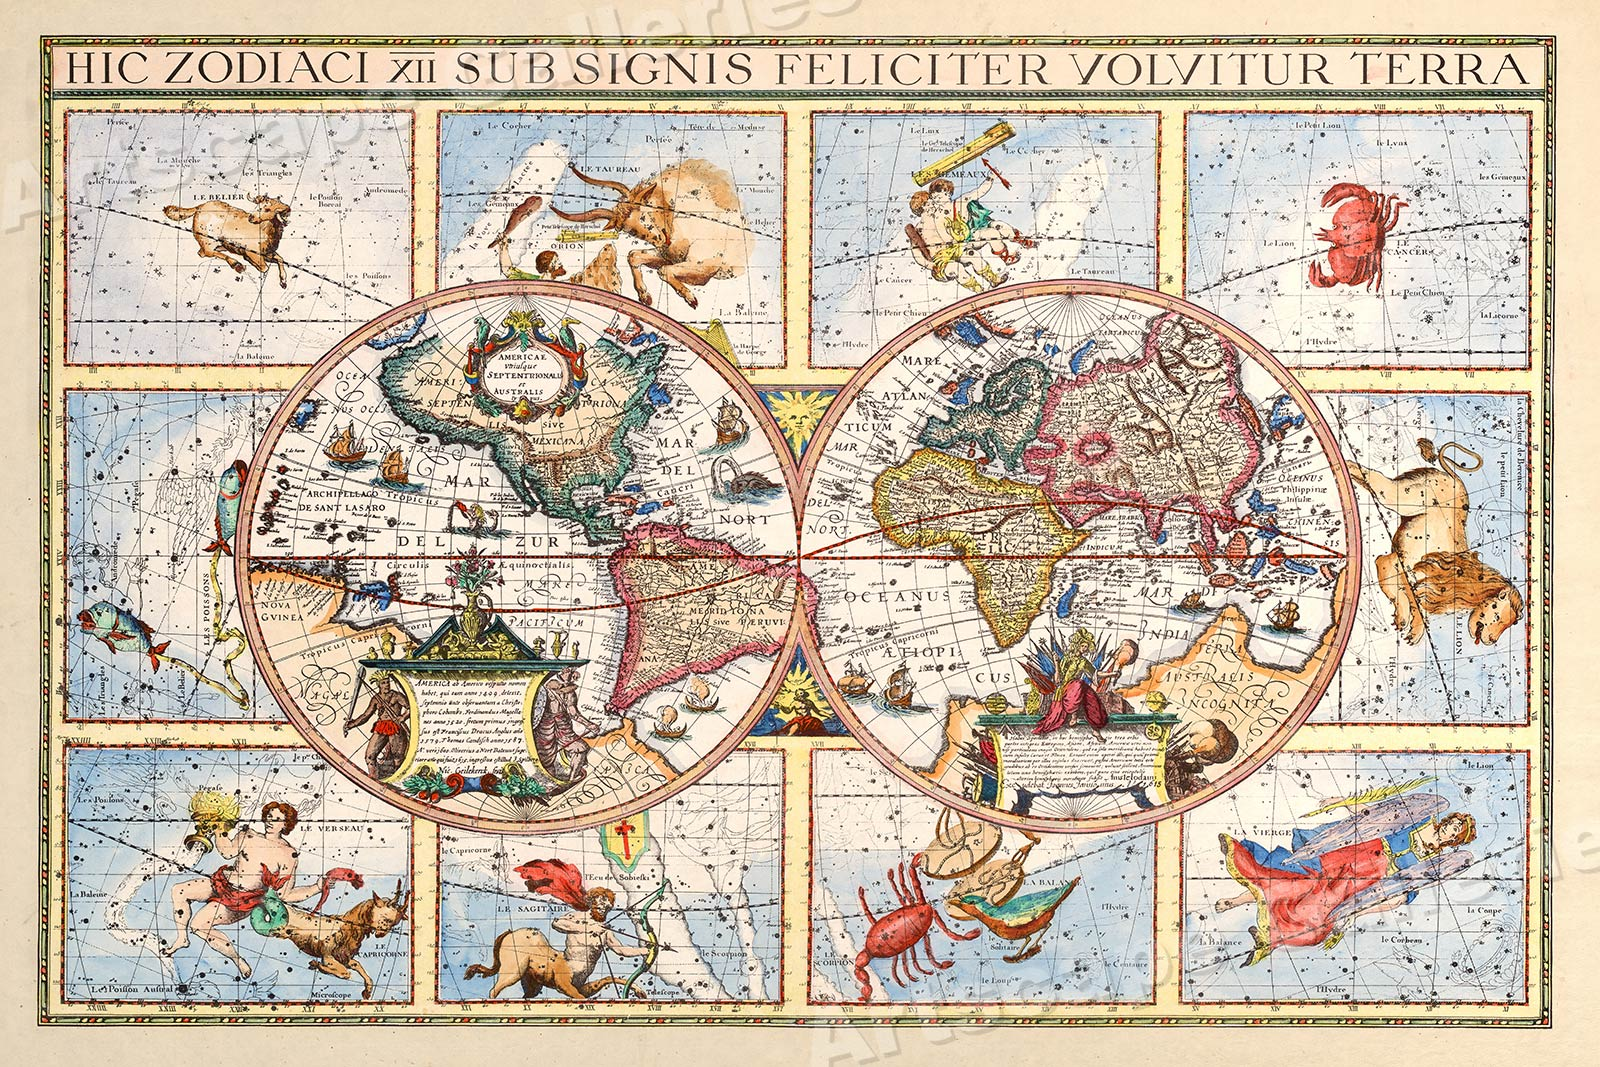 Details about 1615 Astrology Unusual Historic Old World Zodiac Map on story map, skagen map, cat map, moon map, earth map, everest map, scorpius map, complete astrology map, astrology chart map, ancient greek astronomy map, zombie map, fire map, monkey map, titanic map, capitals of the world map, astrological sign map, constellation map, world war z map, azimuth map, flags of the world map,